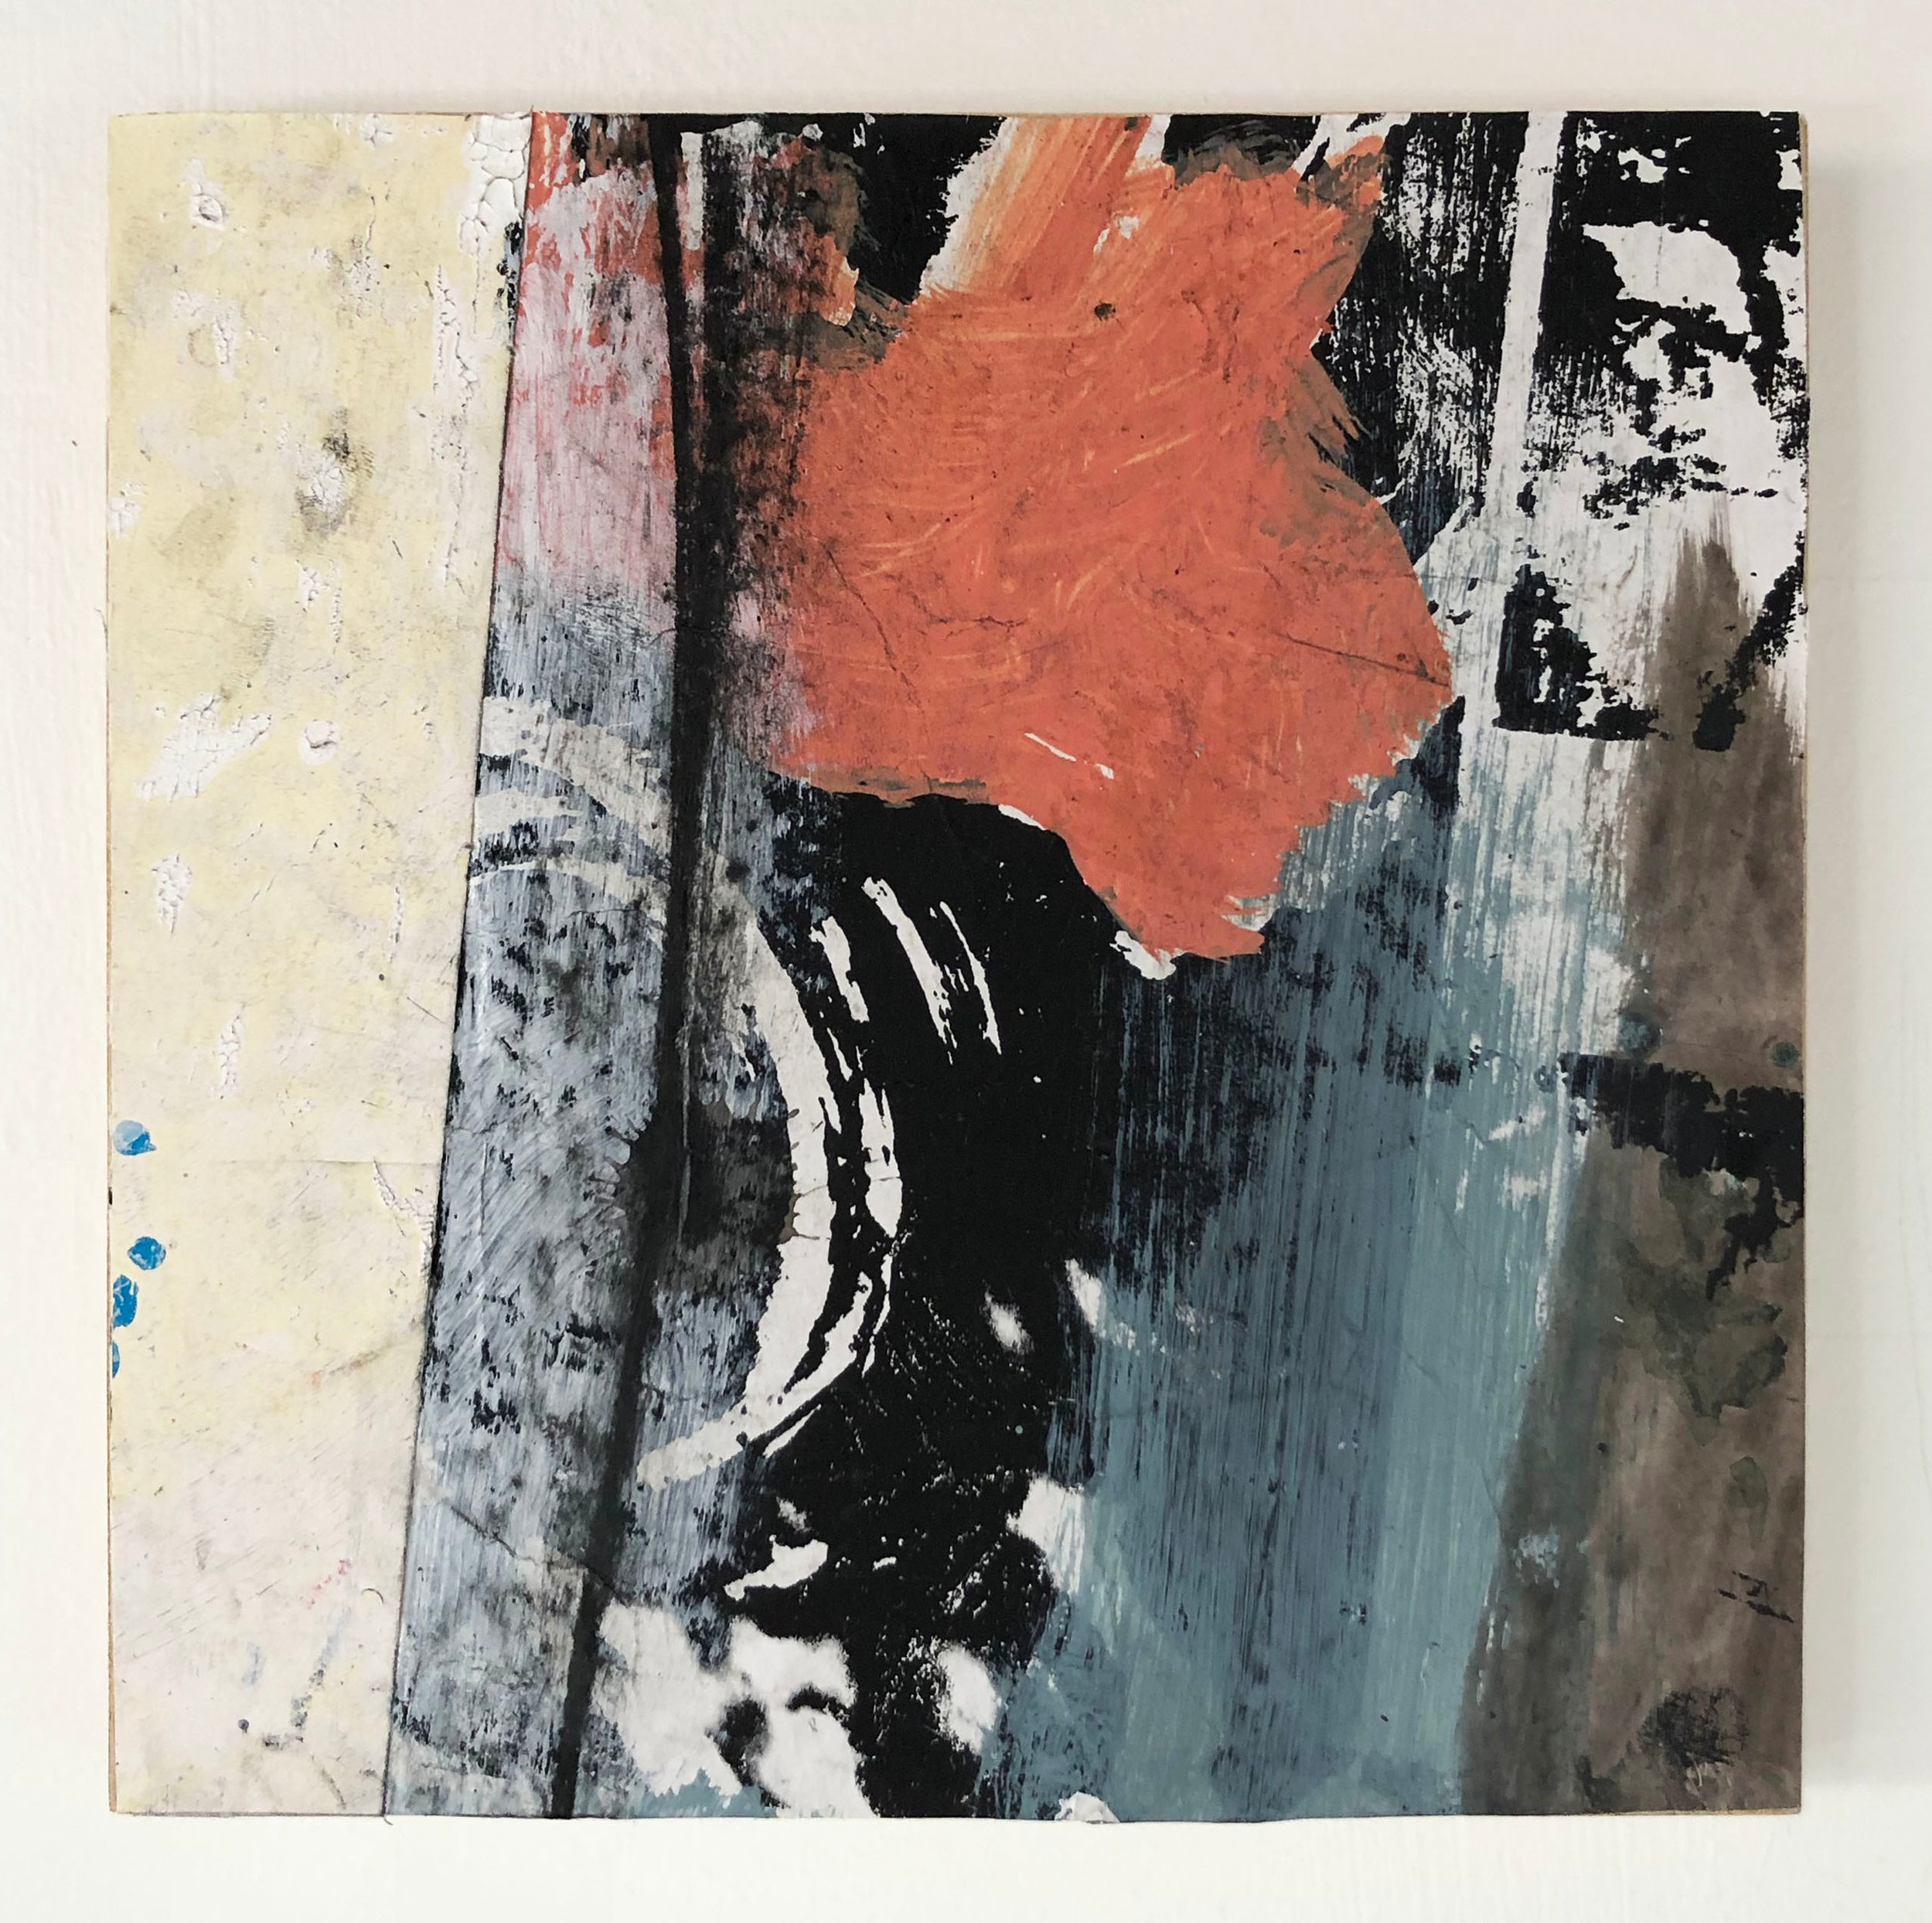 Accumulation,  2016-18, Collage, charcoal, acrylic, oil, ink, serigraphy, on panel